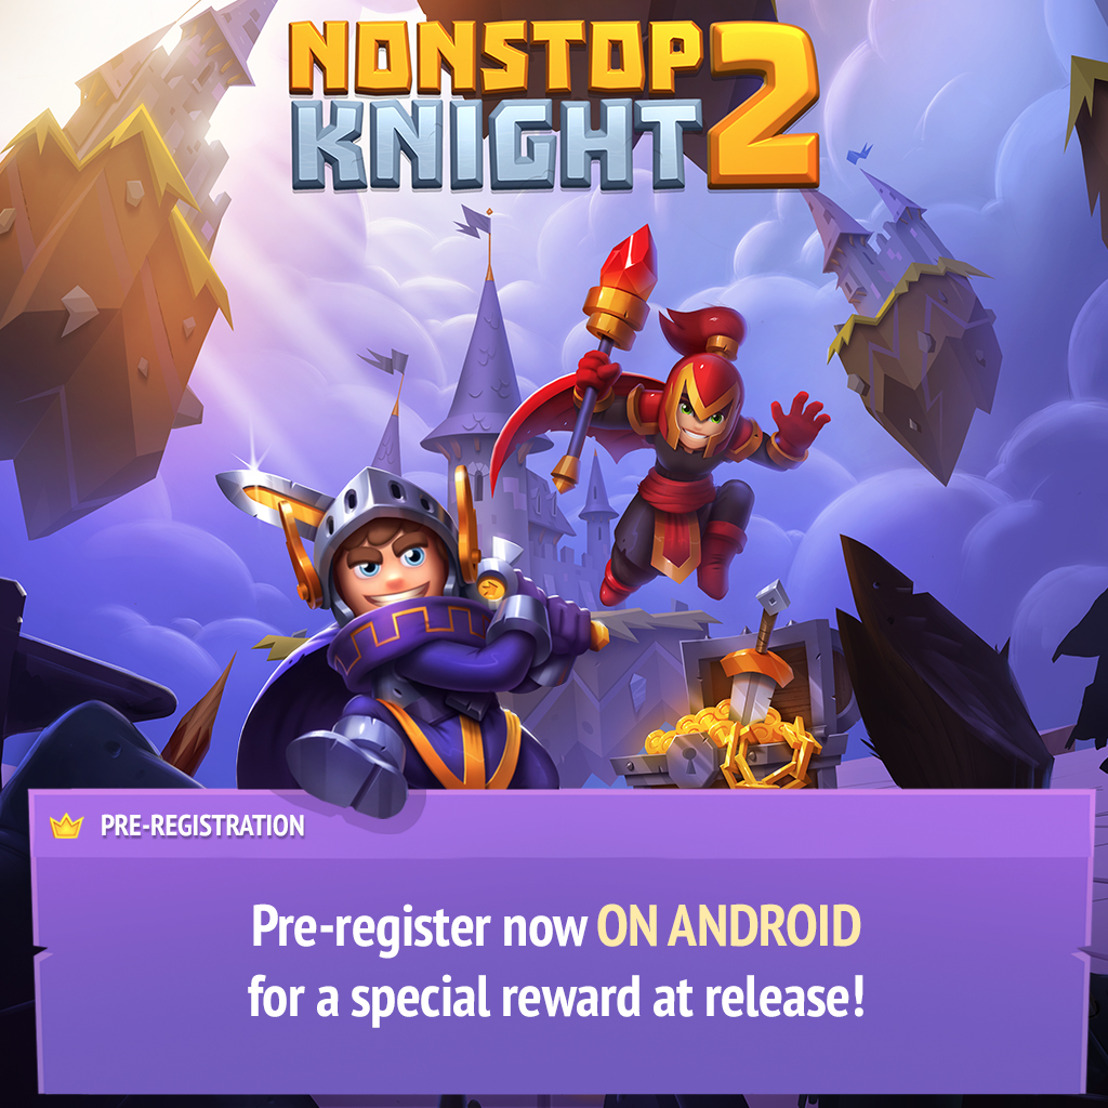 Pre-register now for Nonstop Knight 2 on Google Play!